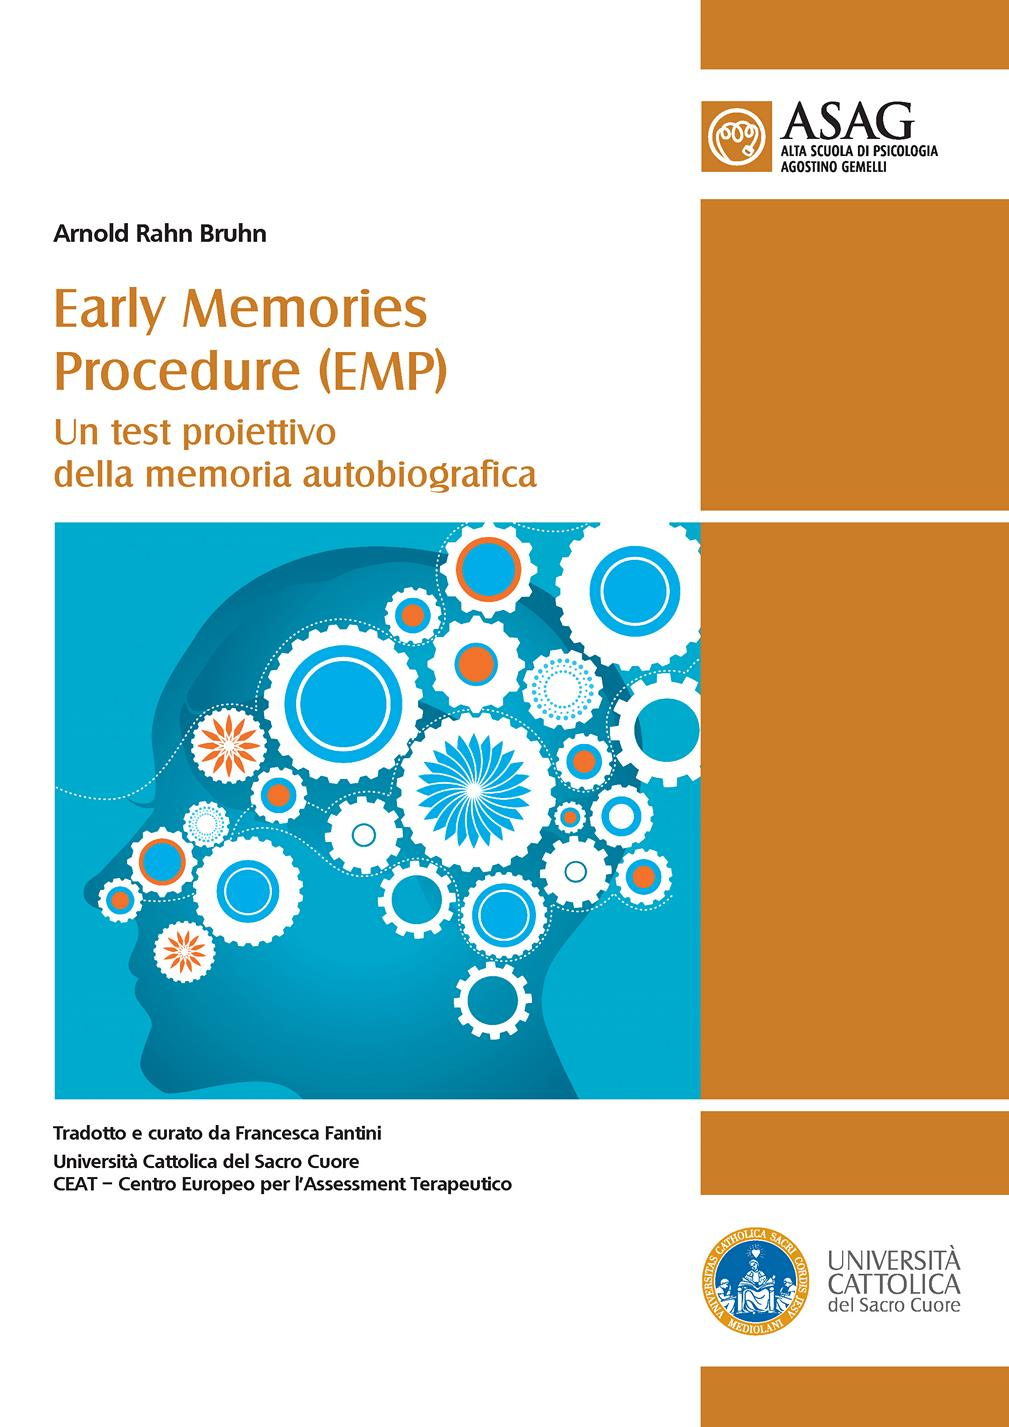 BOOKLET - EARLY MEMORIES PROCEDURE (EMP) UN TEST PROIETTIVO DELLA MEMORIA AUTOBIOGRAFICA